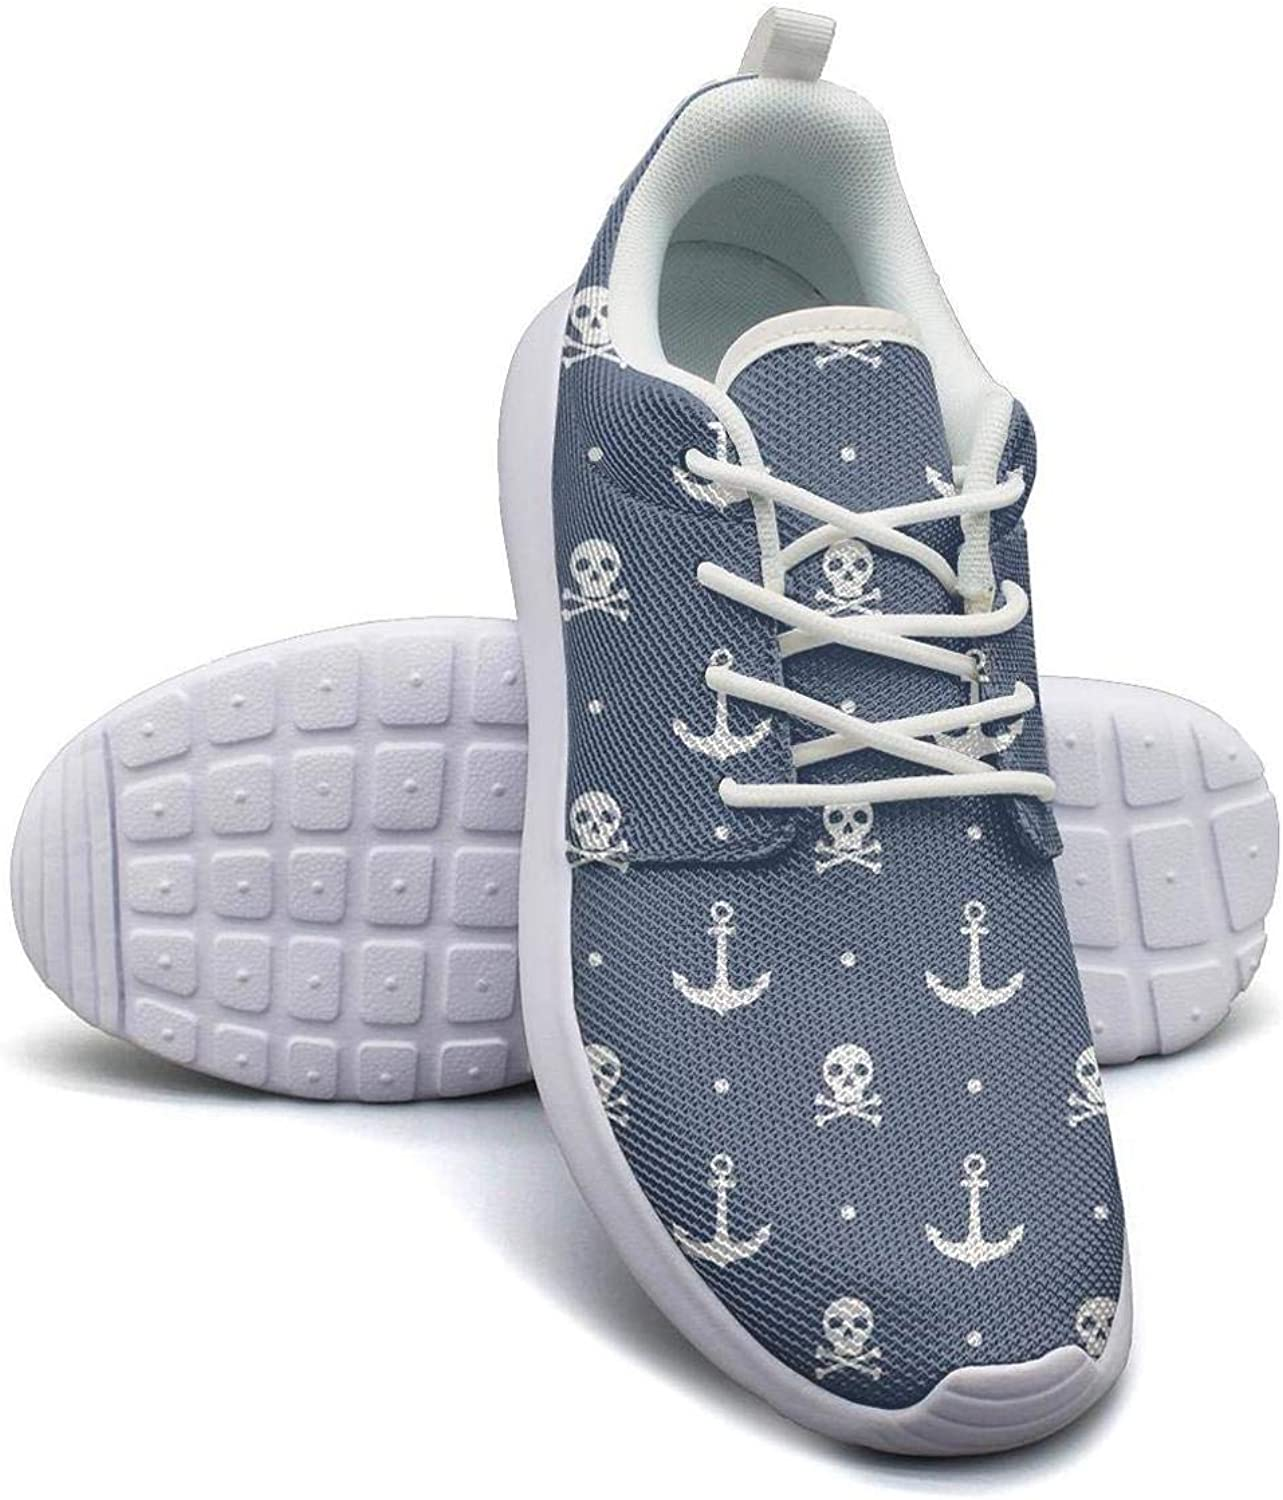 Gjsonmv Anchors Skulls bluee mesh Lightweight shoes Women Dad Sports Gym Sneakers shoes